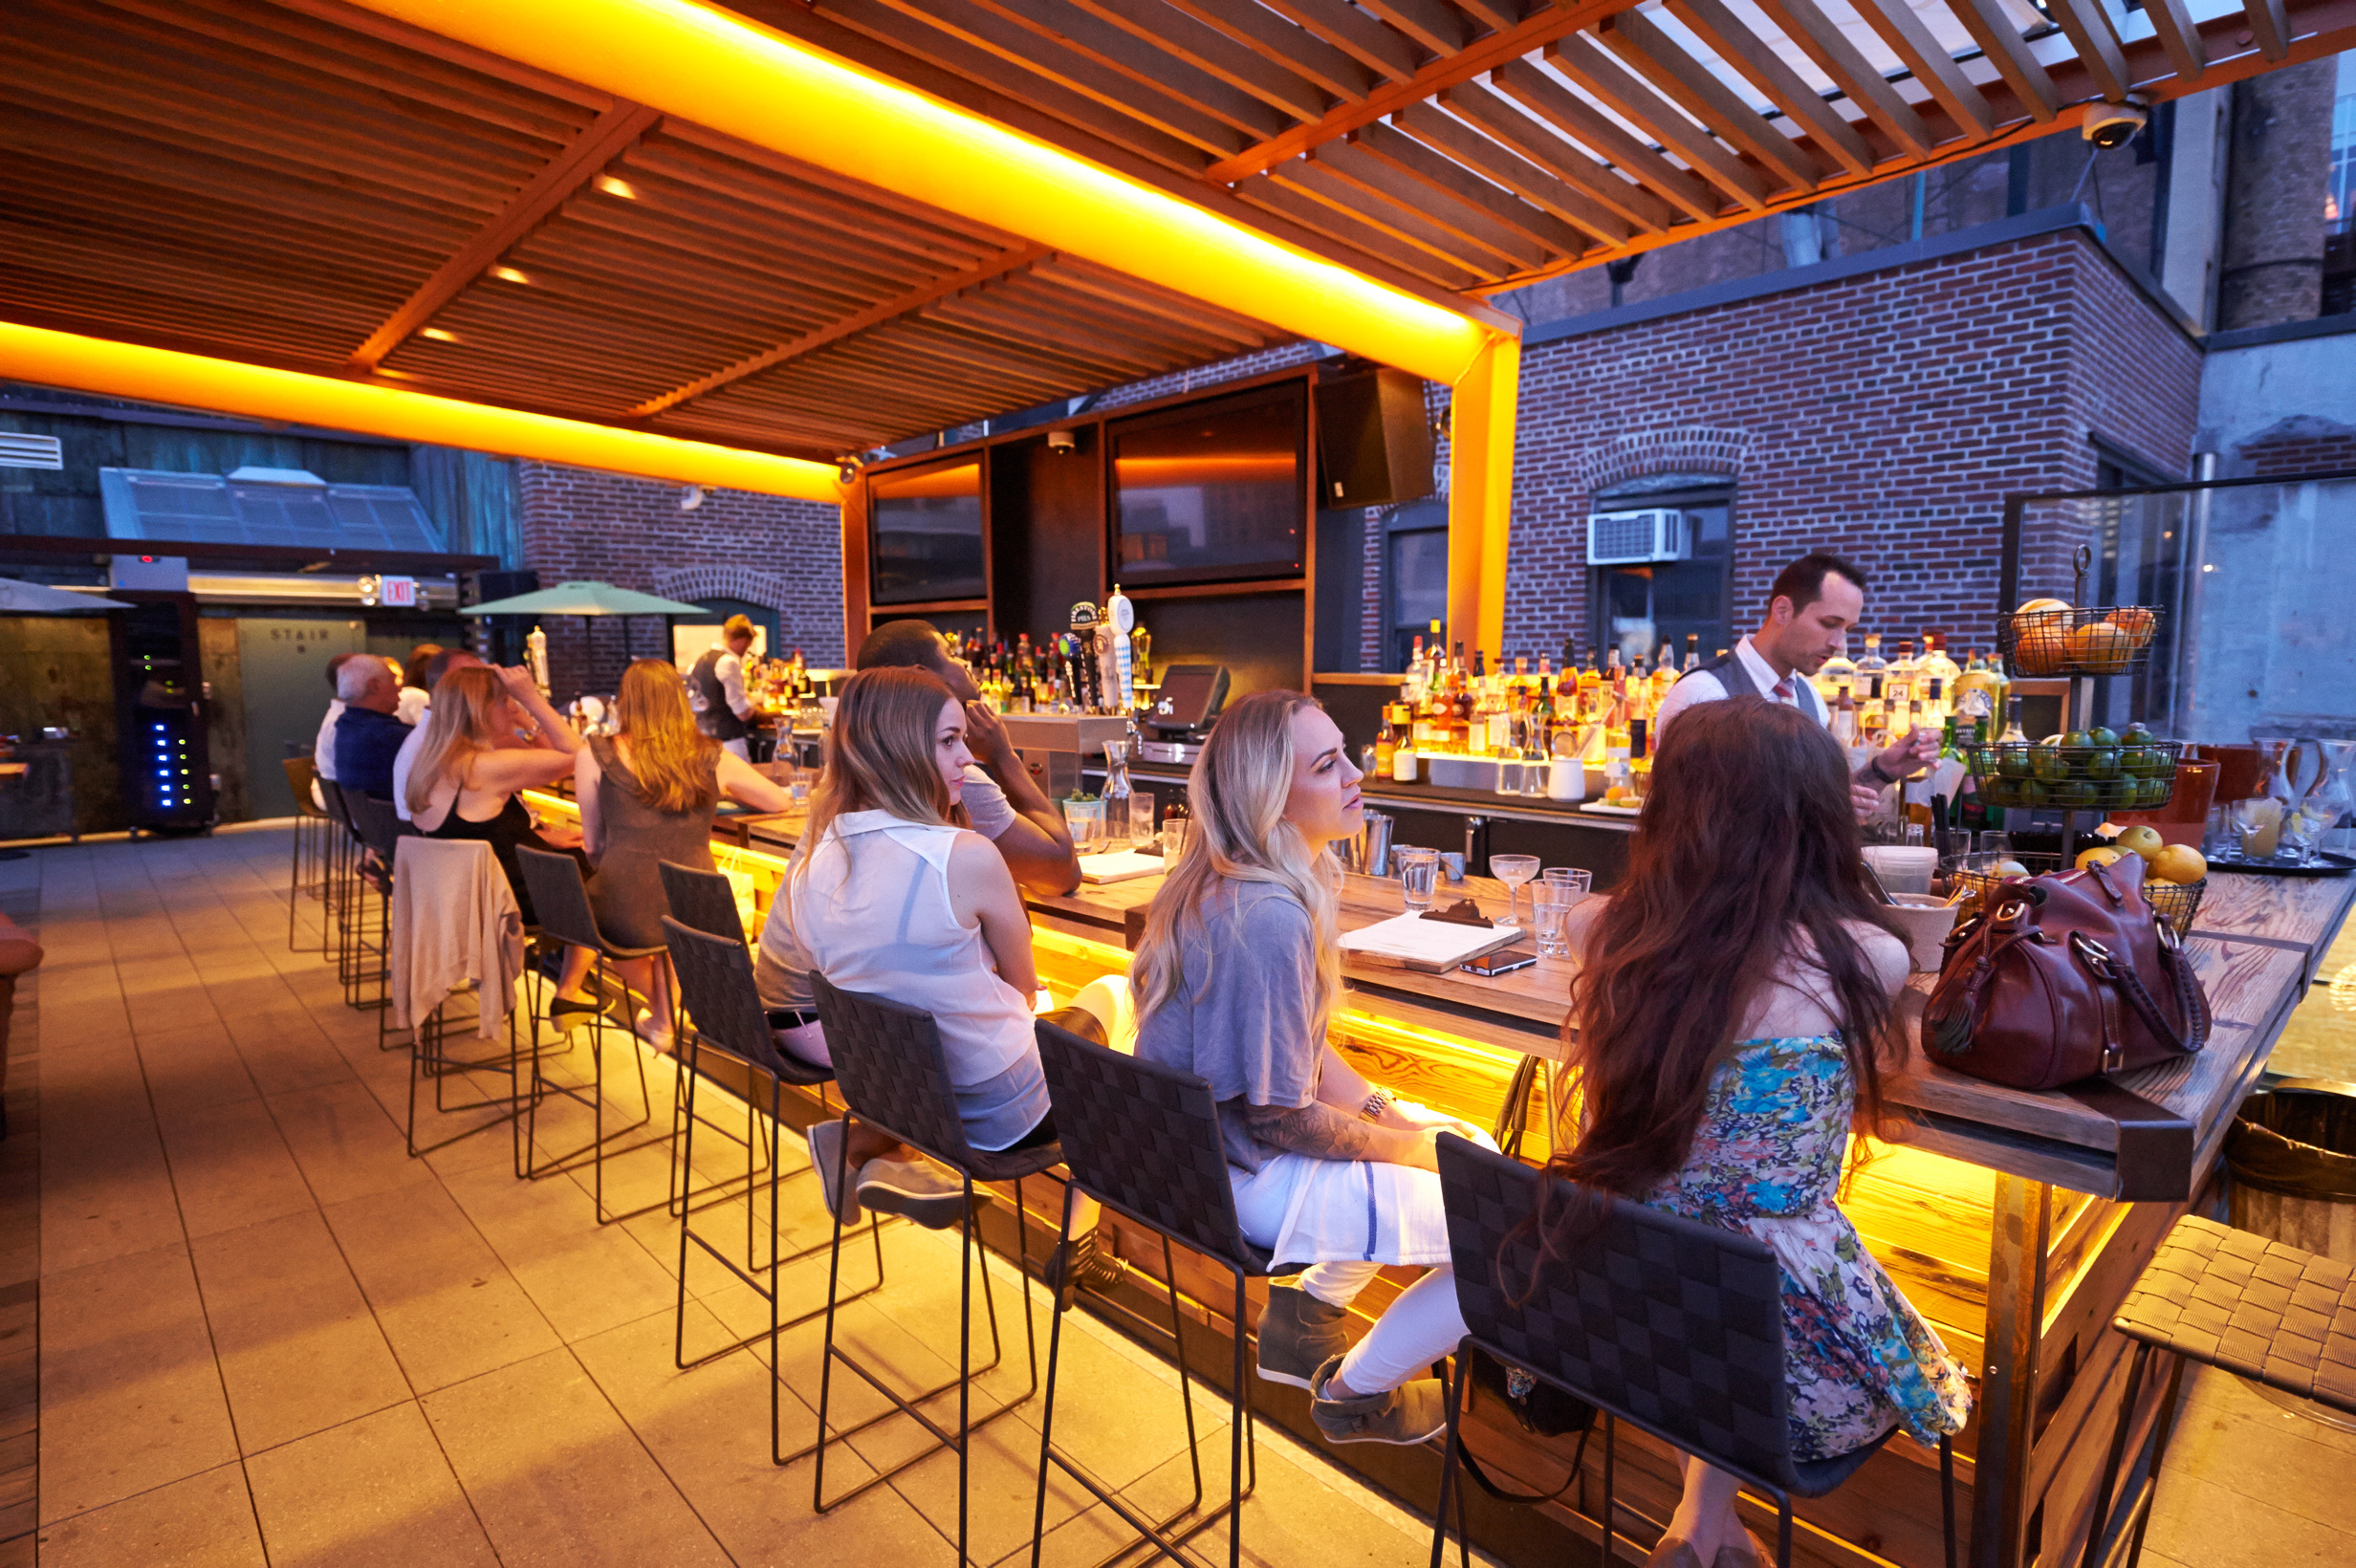 23 Of The Best Rooftop Bars In Nyc To Visit This Summer